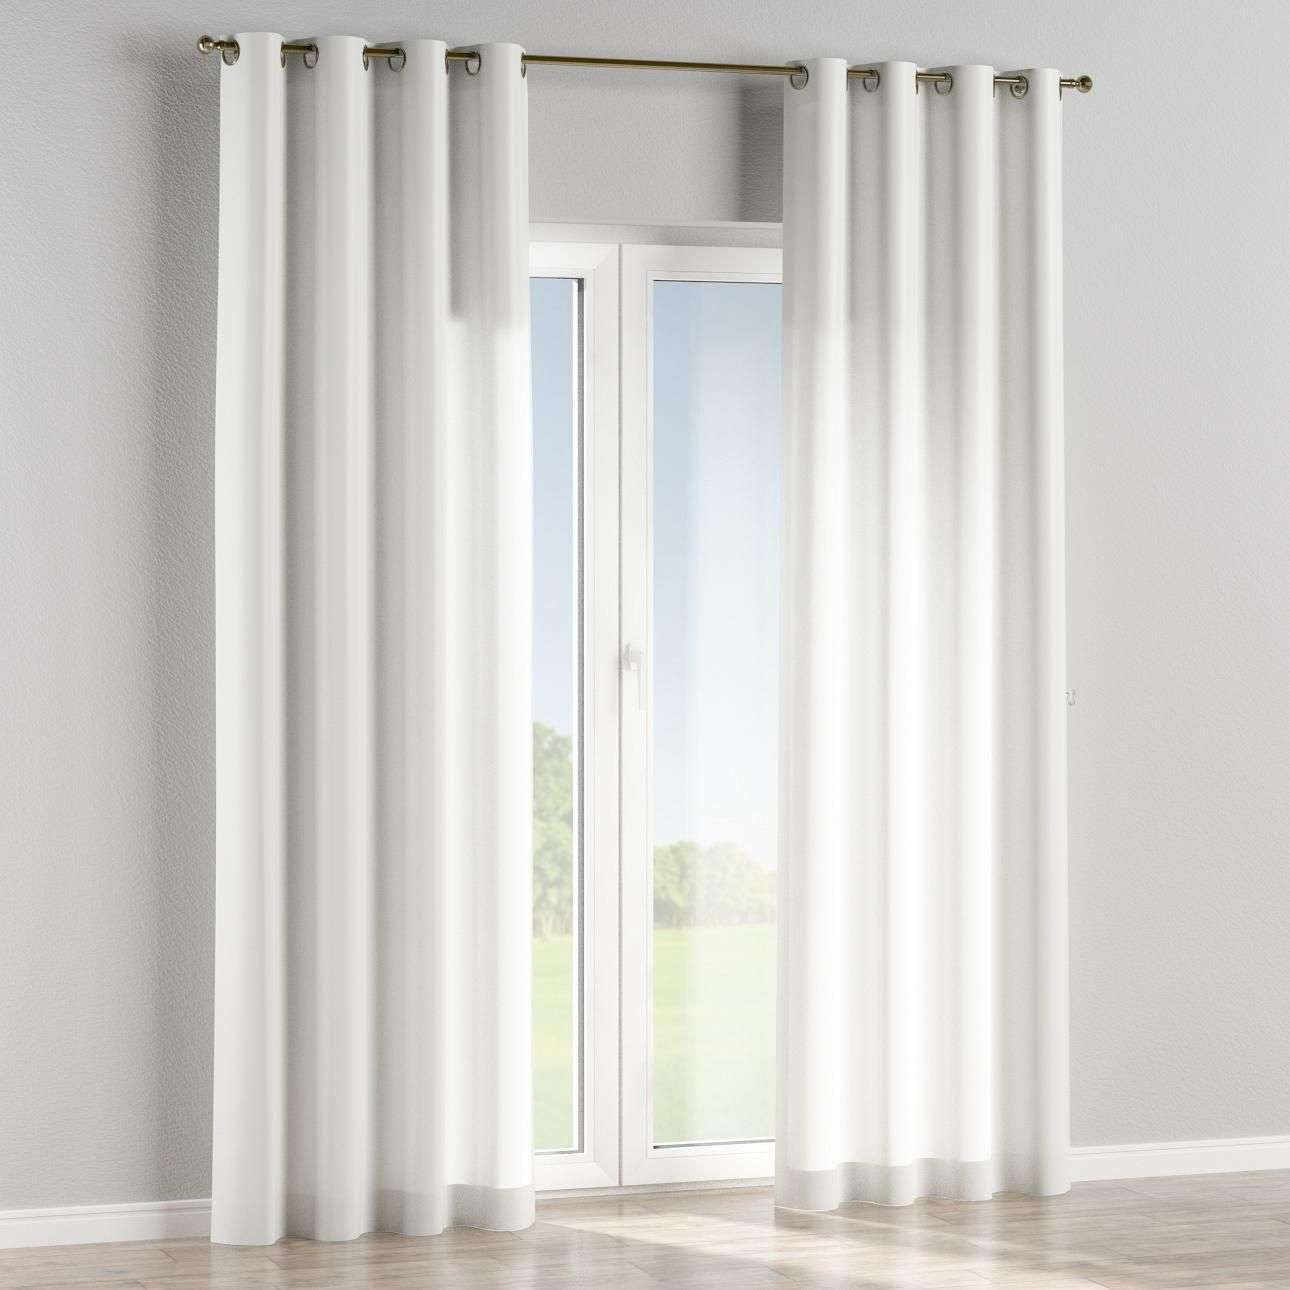 Eyelet lined curtains in collection Cardiff, fabric: 136-23